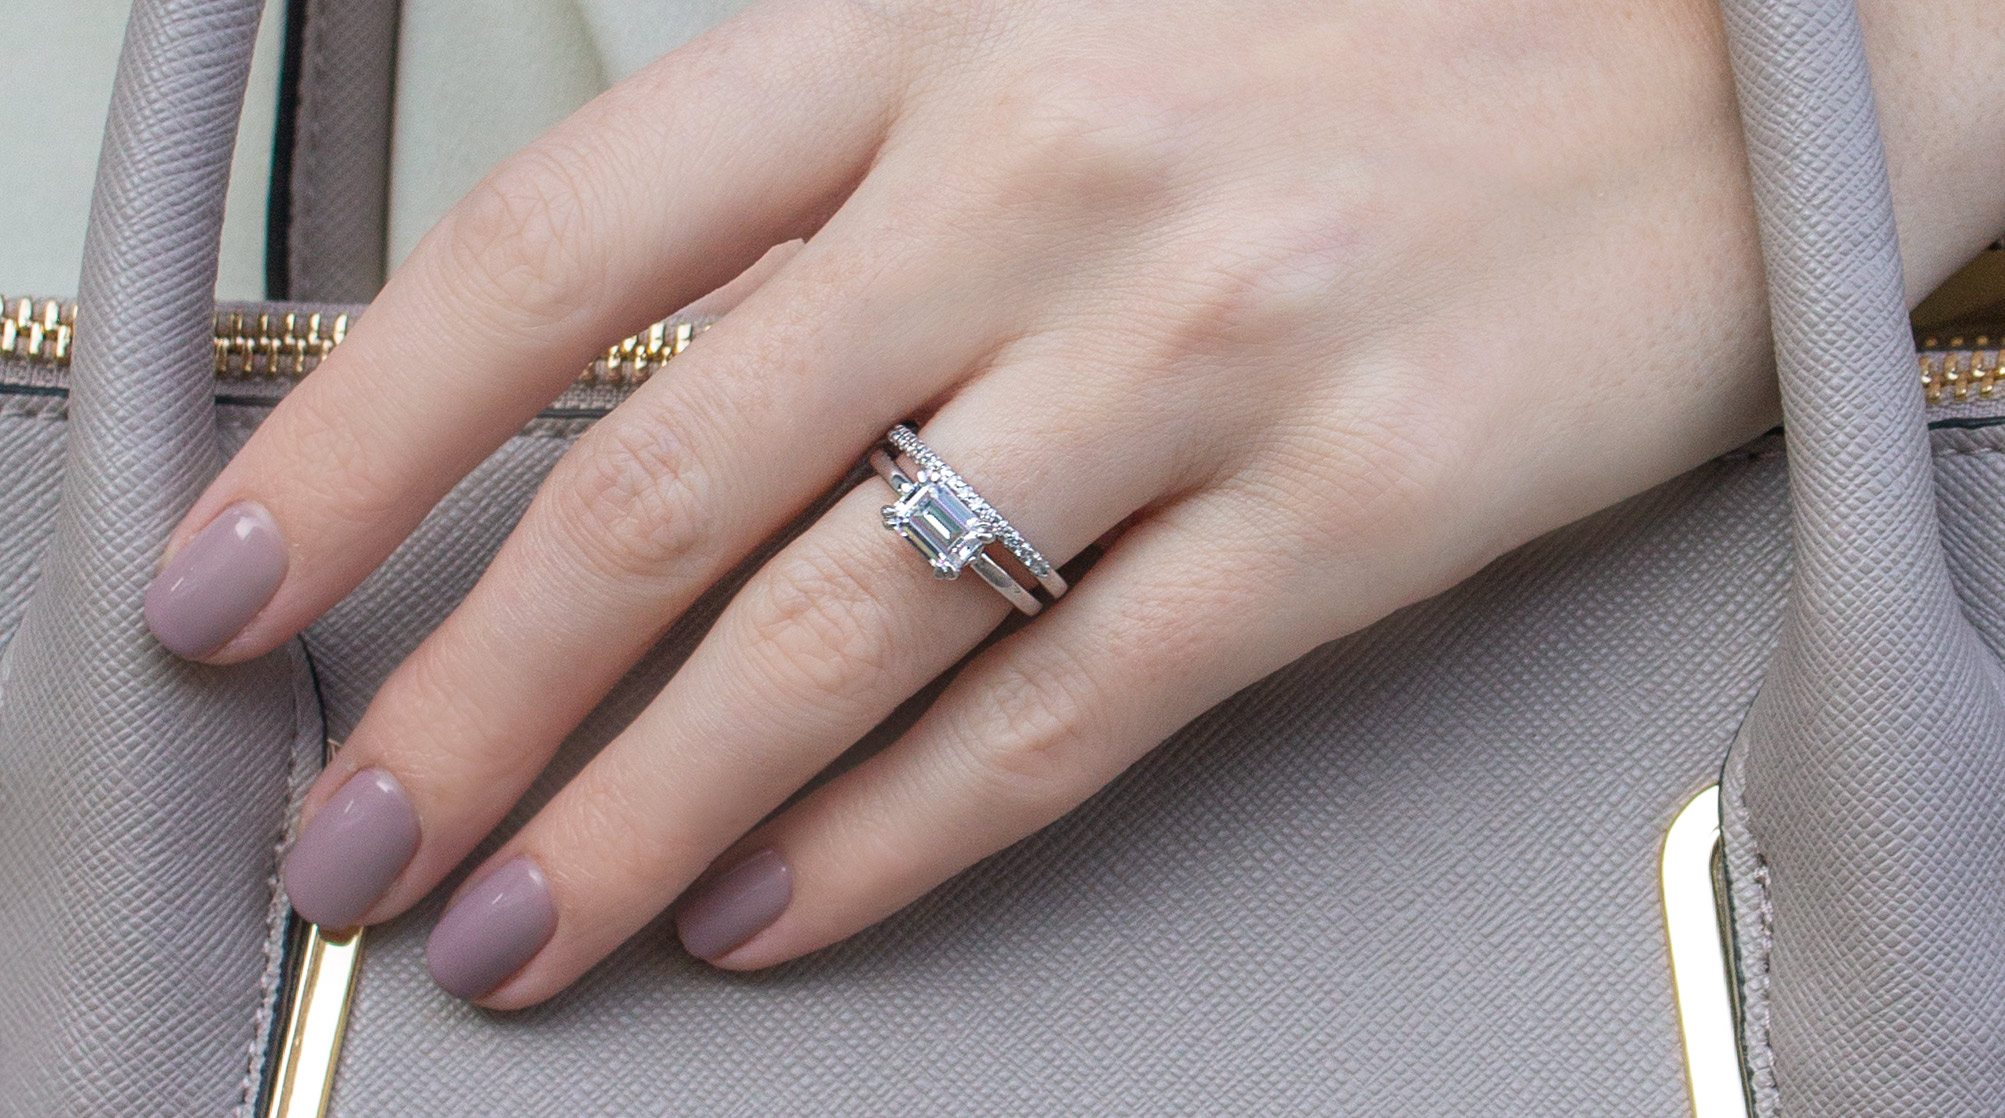 A classic wedding set from Diamond Nexus featured on a hand.